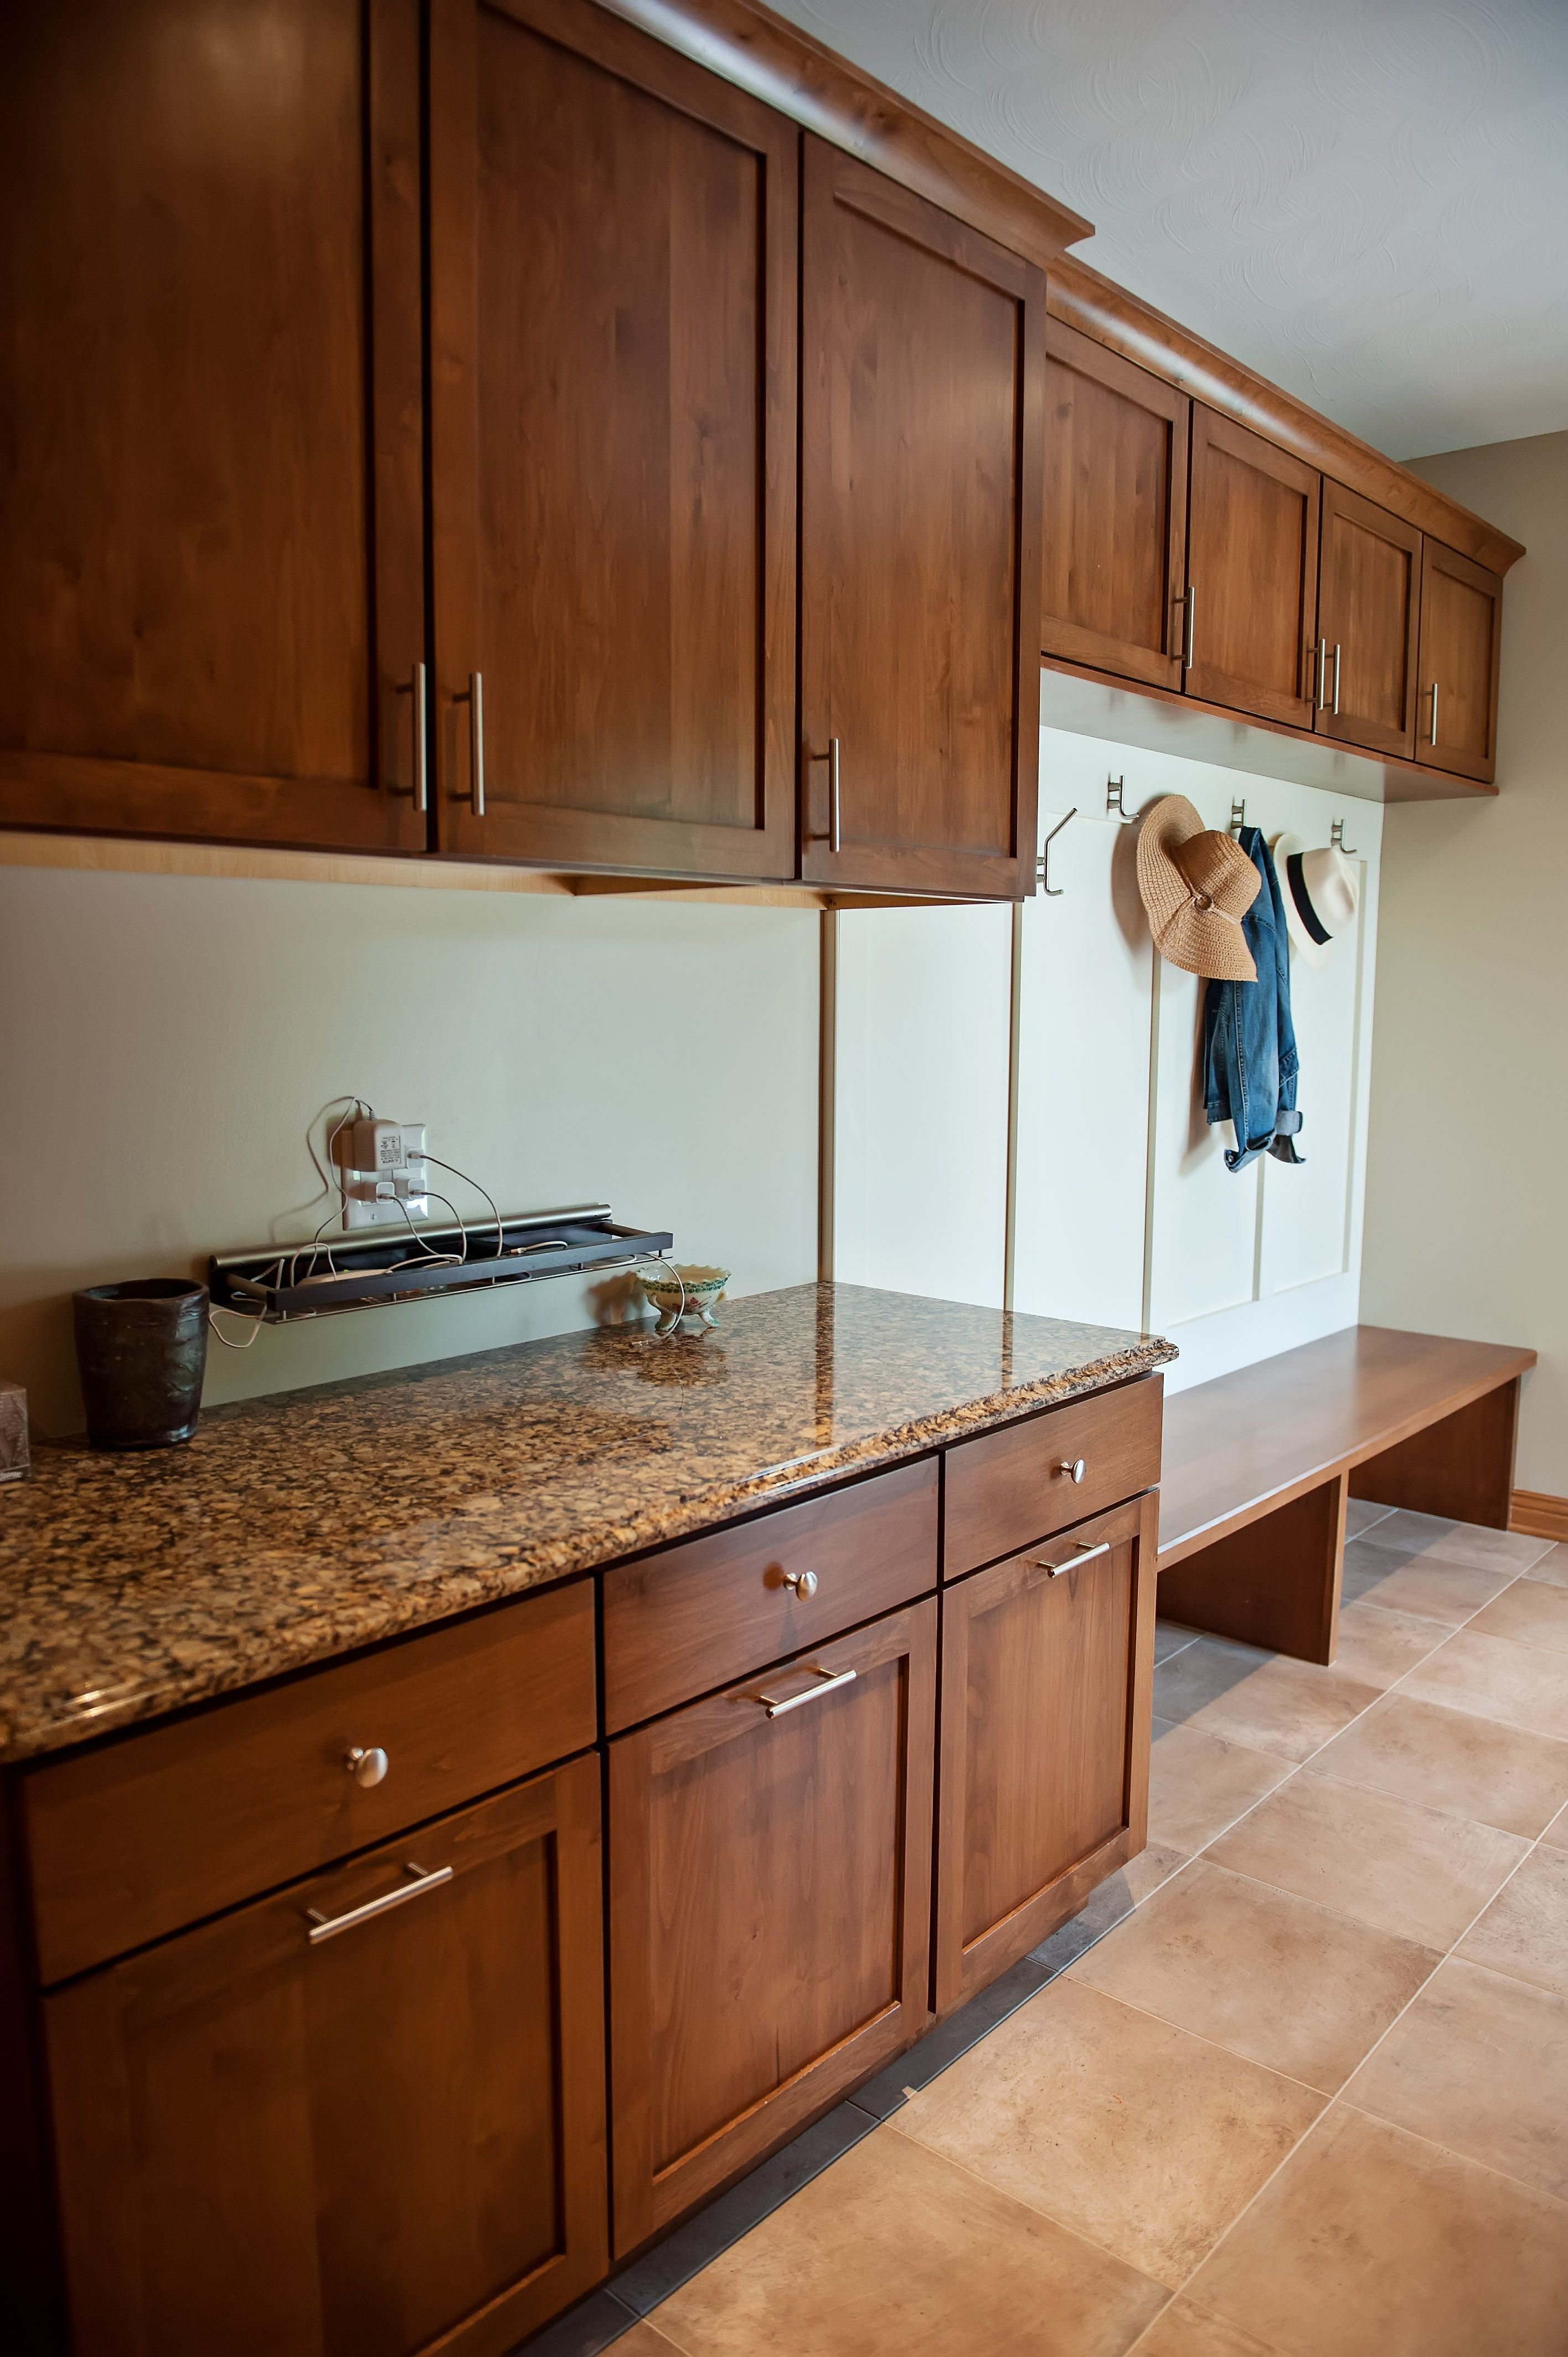 Kitchen Remodel Reese Construction, Inc. Lincoln, NE ...